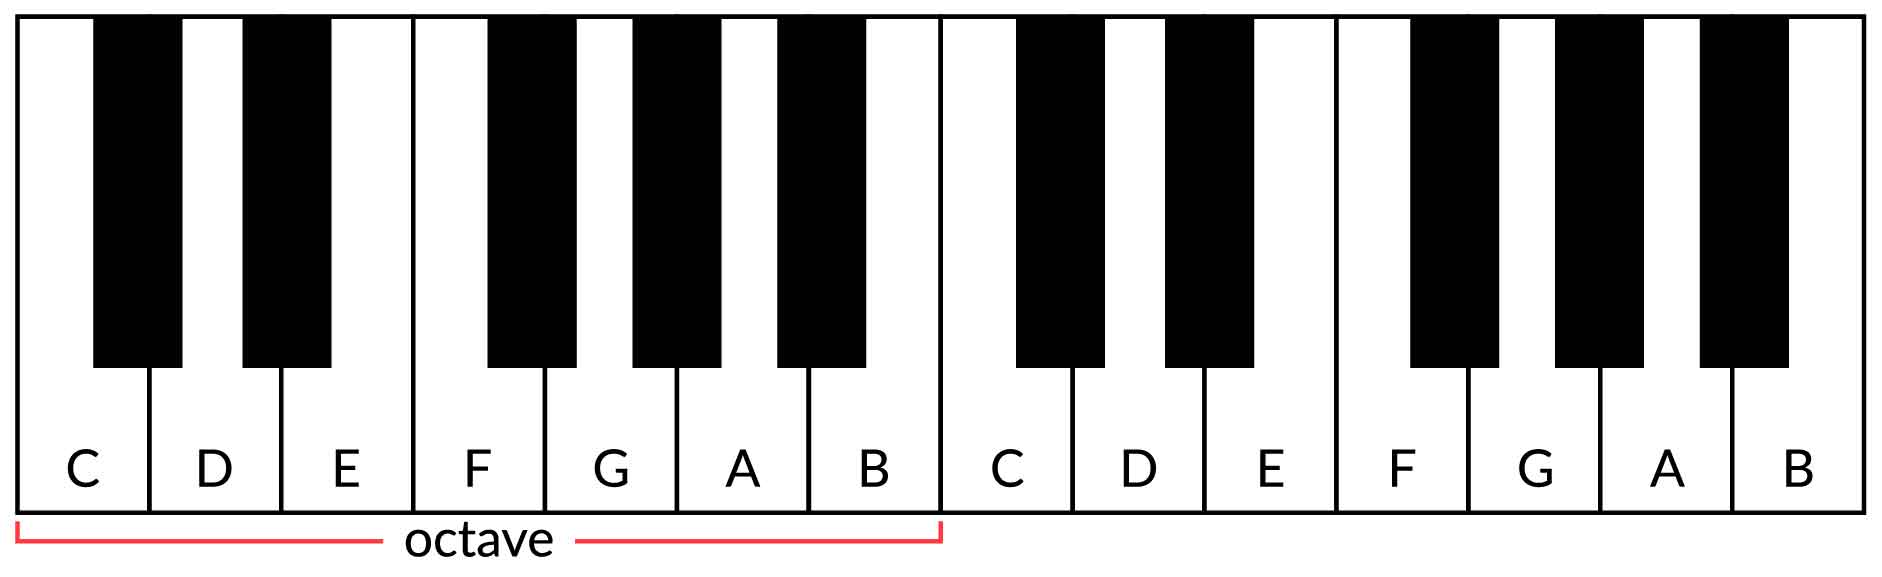 photo regarding Beginner Piano Lessons Printable referred to as How In the direction of Perform Piano